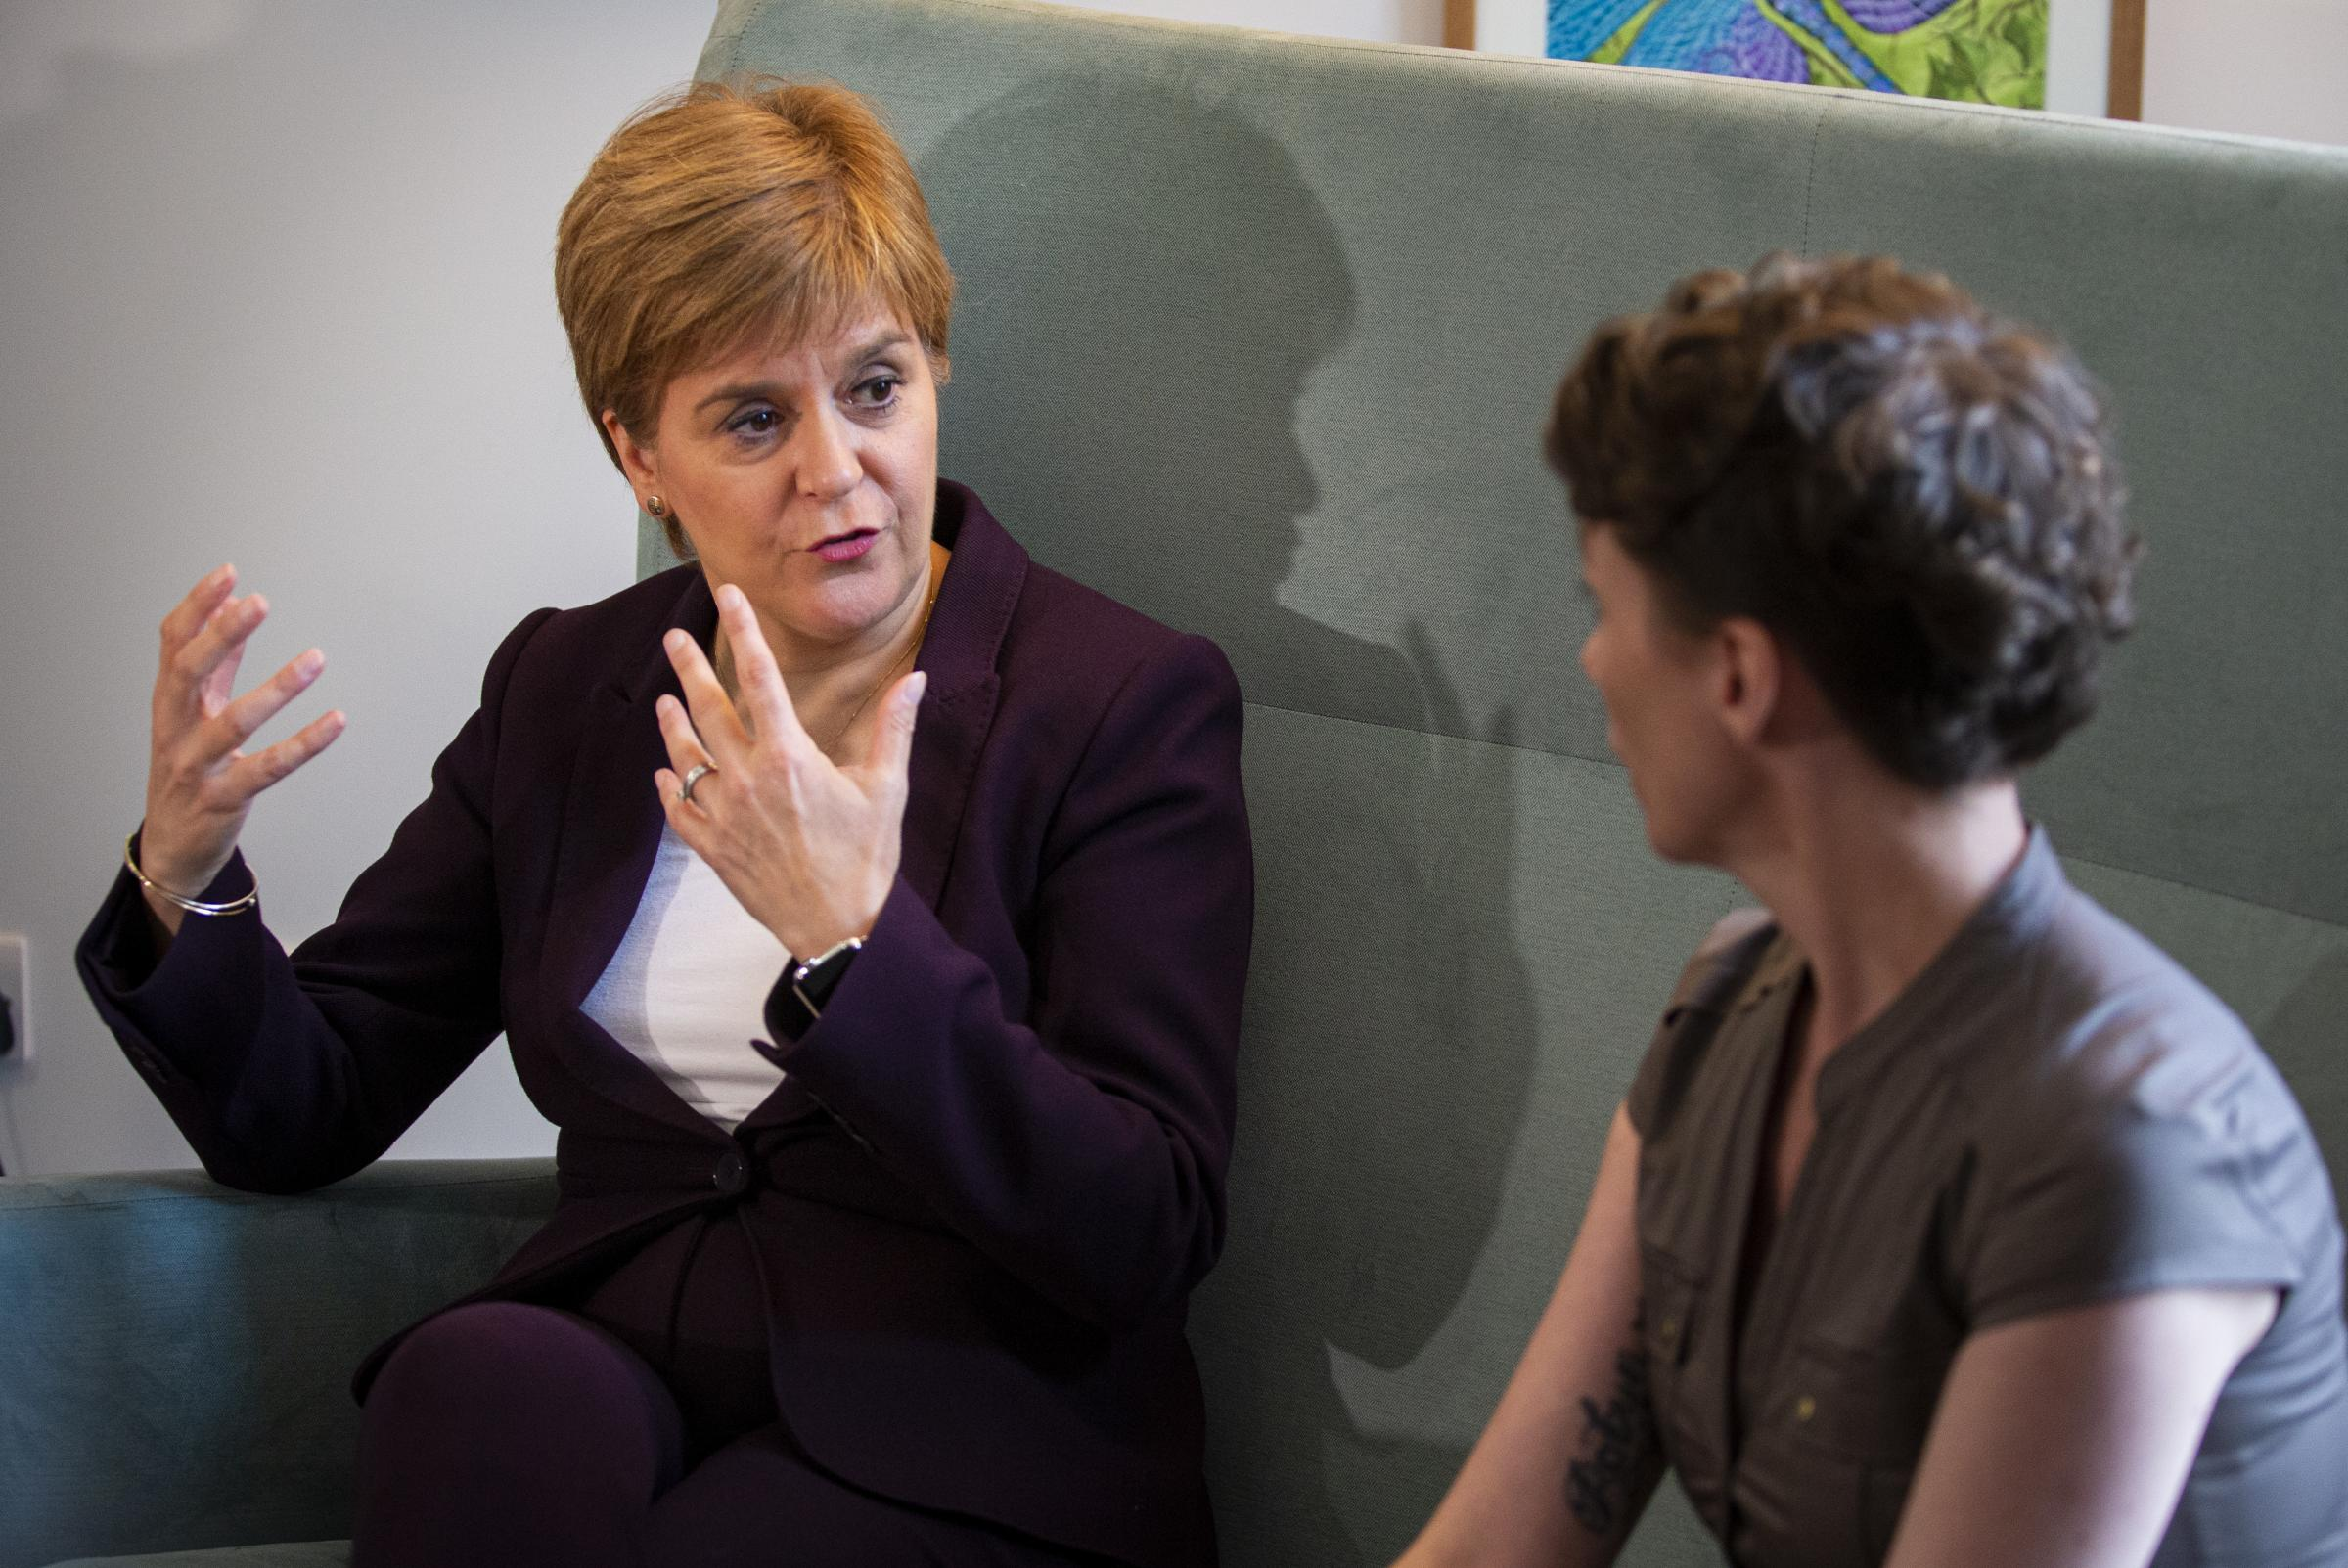 Everything the SNP and Nicola Sturgeon do is being undermined